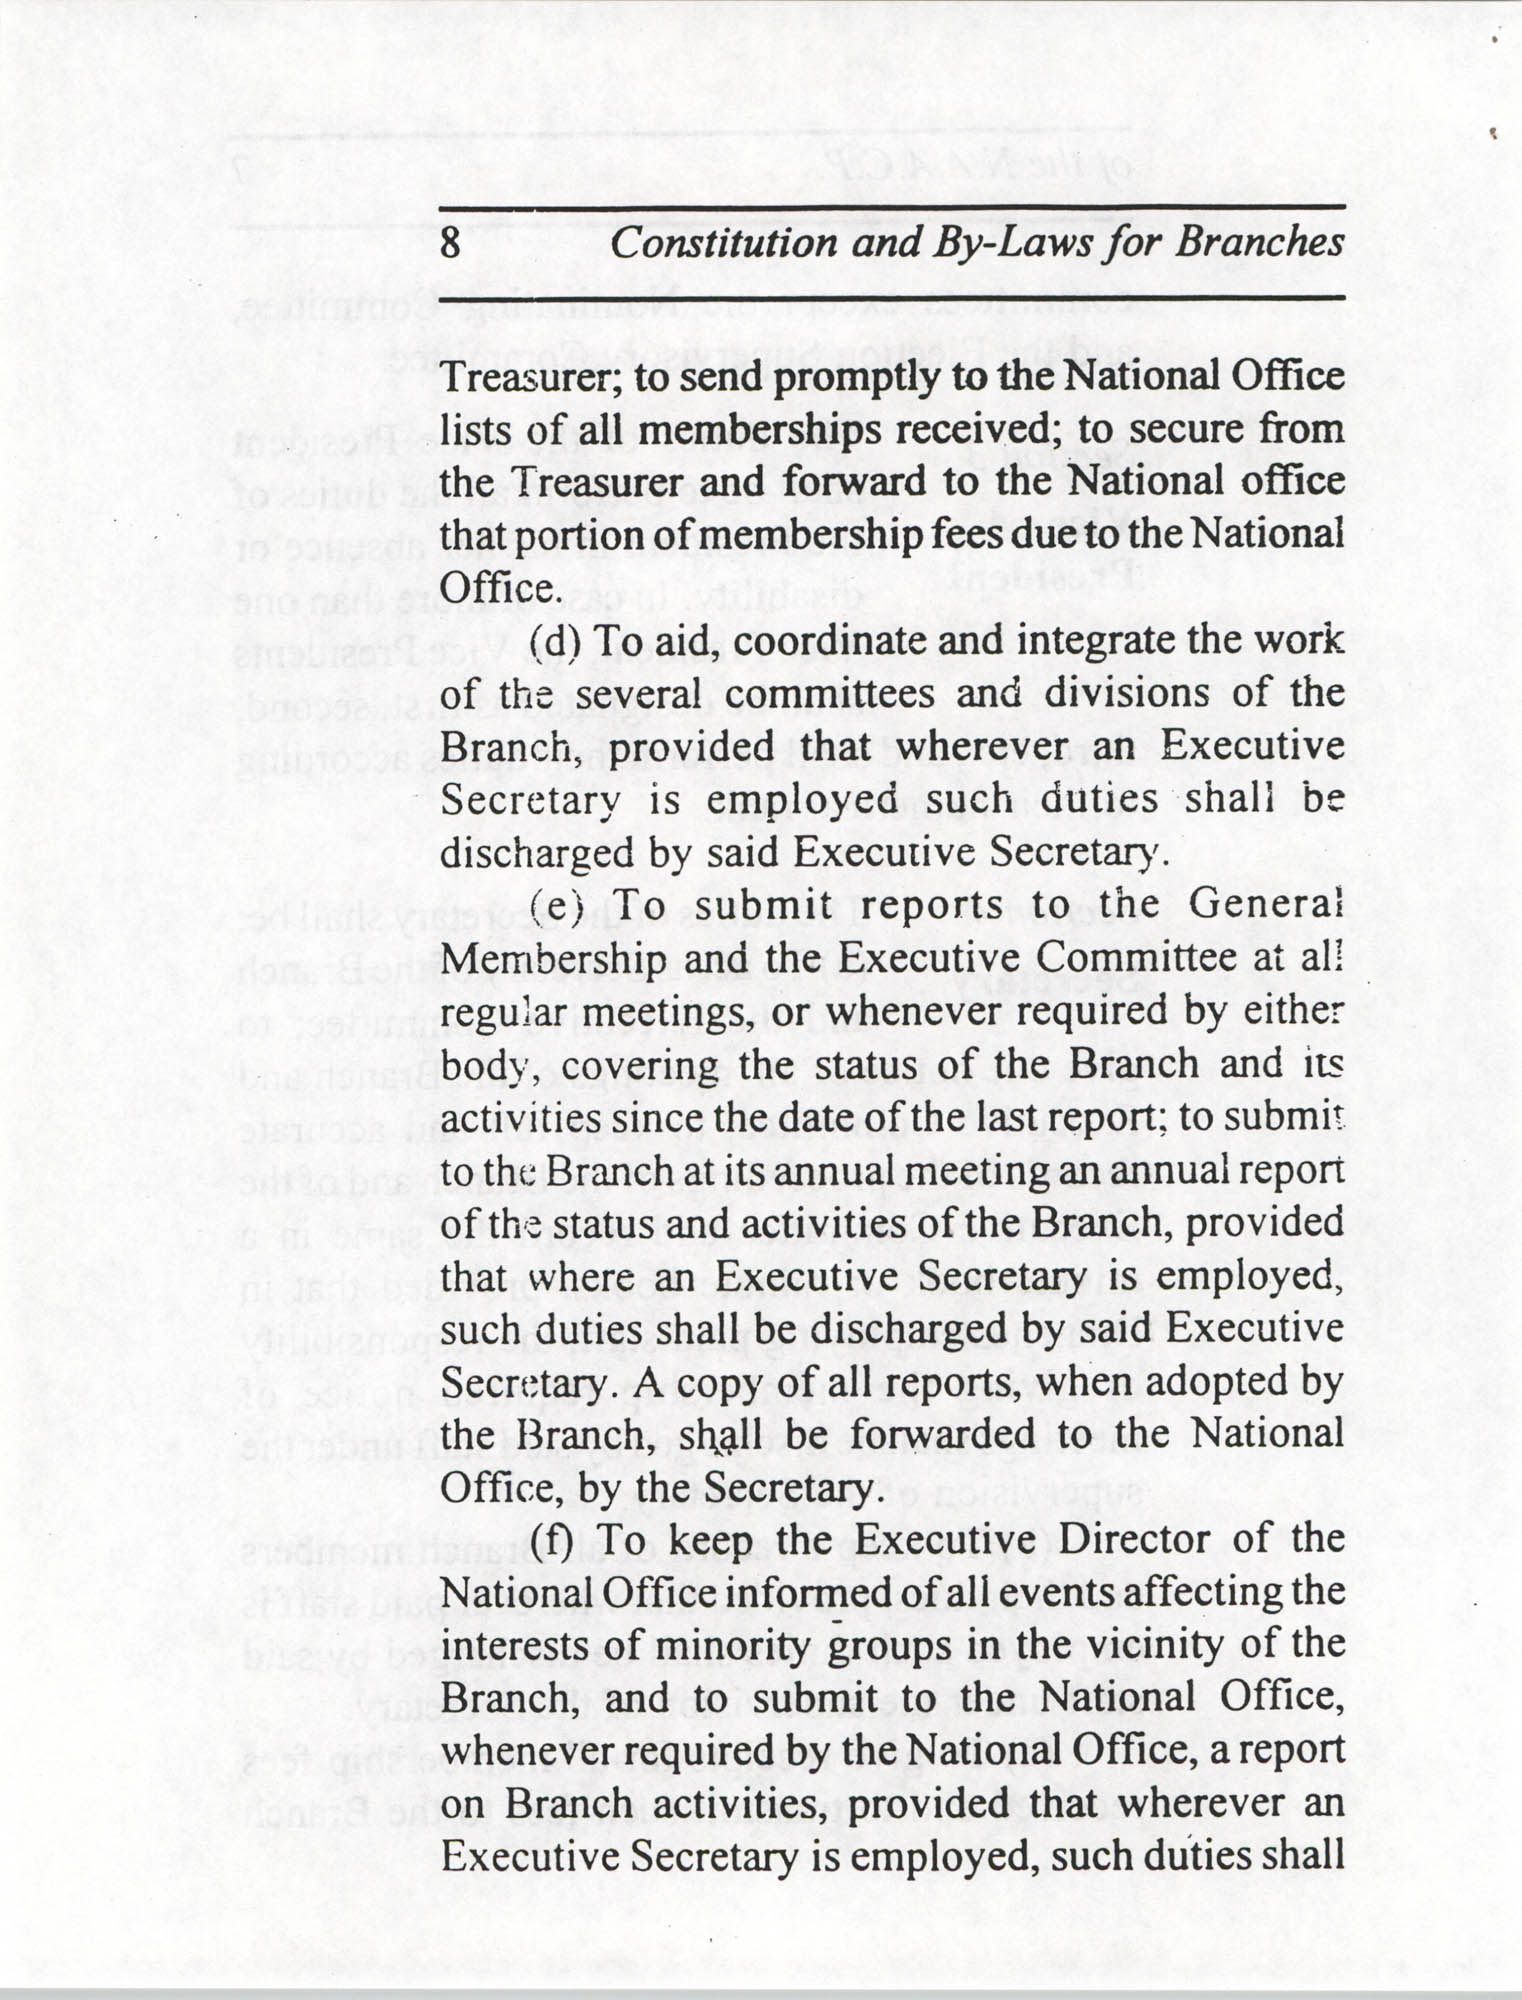 Constitution and By-Laws for Branches of the NAACP, July 1994, Page 8